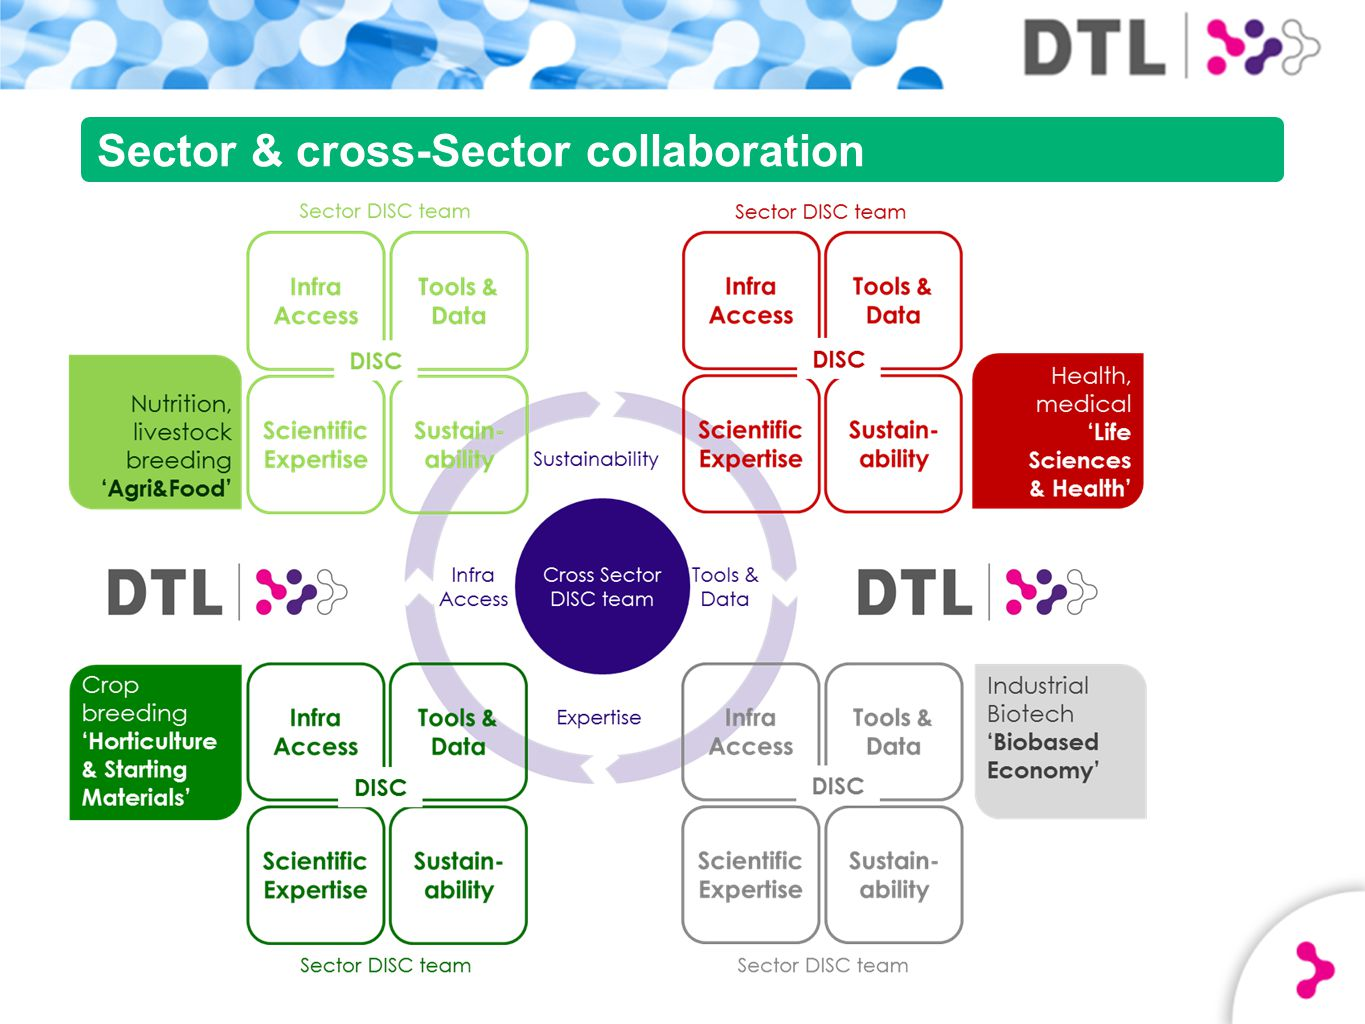 Sector & cross-Sector collaboration